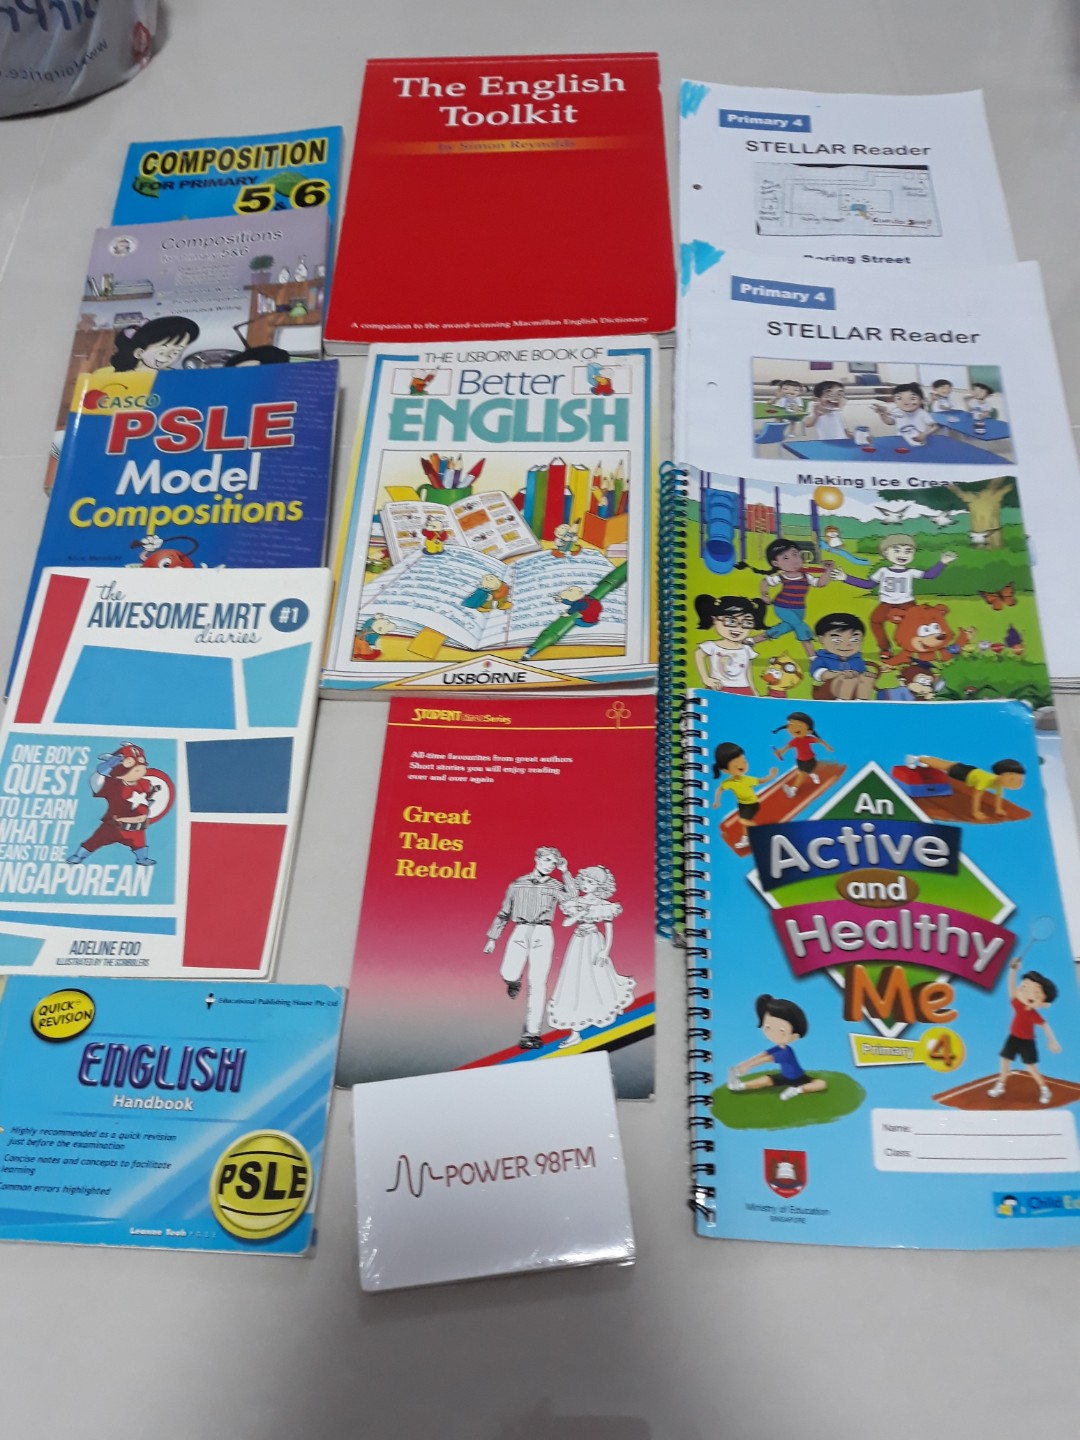 English, Books & Stationery, Textbooks, Primary on Carousell